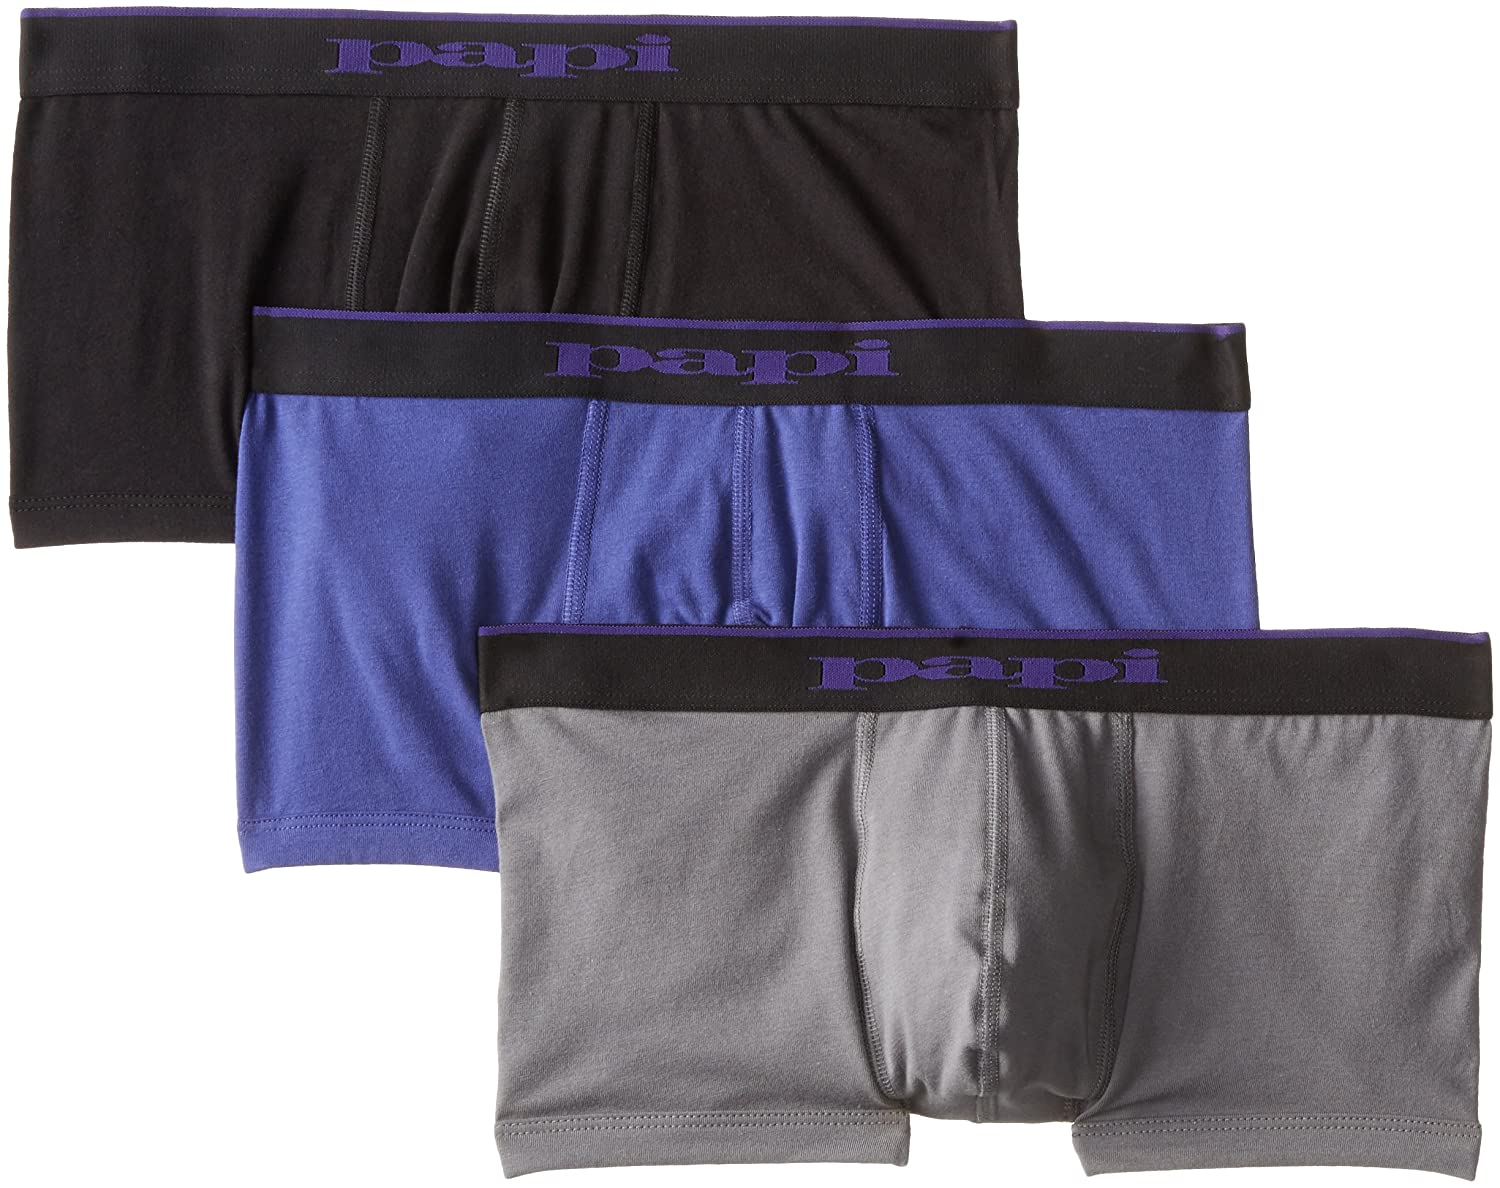 Papi Men's 3-Pack Brazilian Solid Trunk Papi Men's Underwear 980501